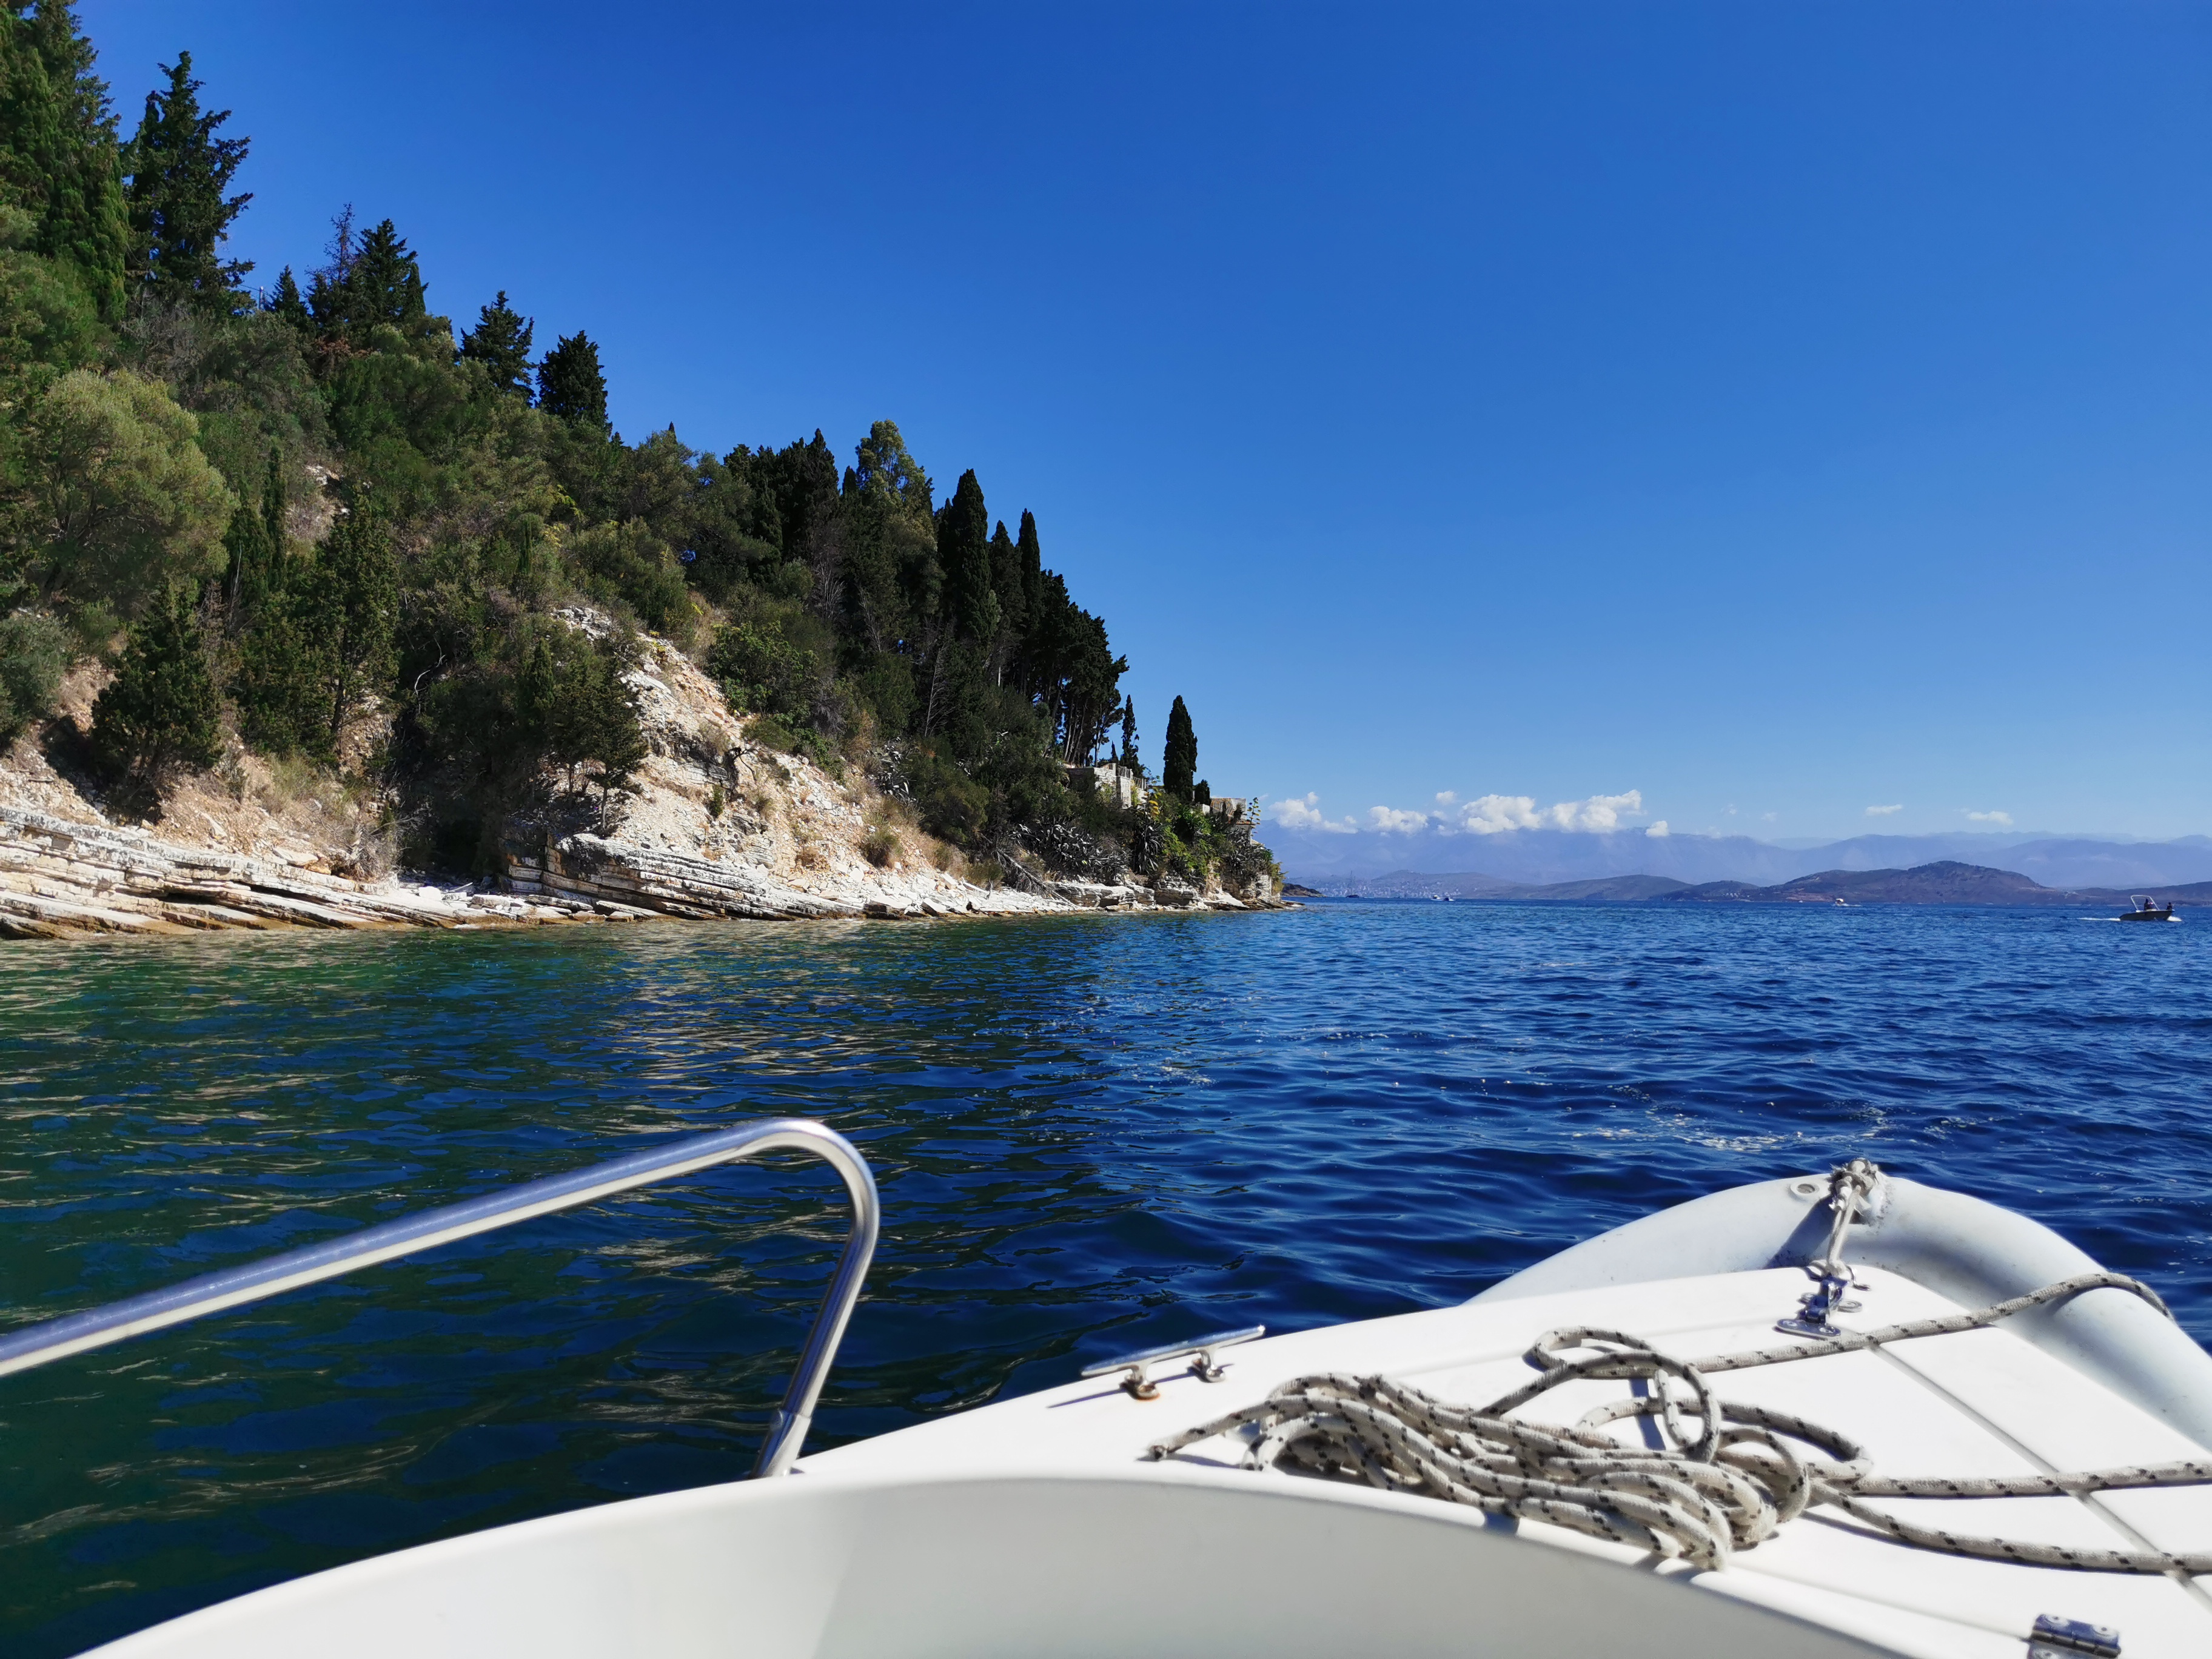 Hiring a boat offers a different view of Corfu's coastline